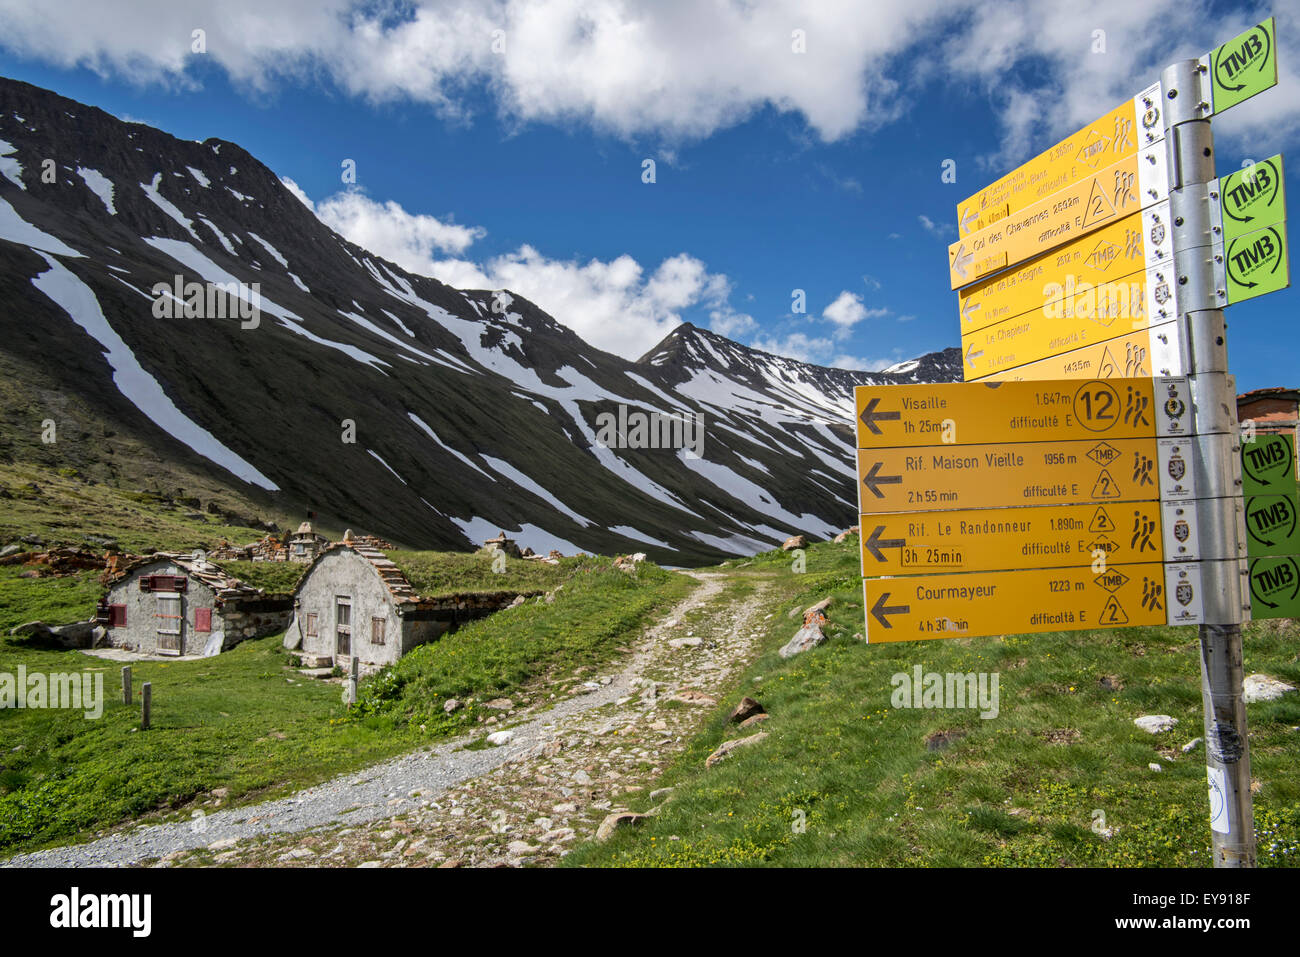 Signpost in Val Veny, valley of the Mont Blanc massif in the Italian Alps - Stock Image